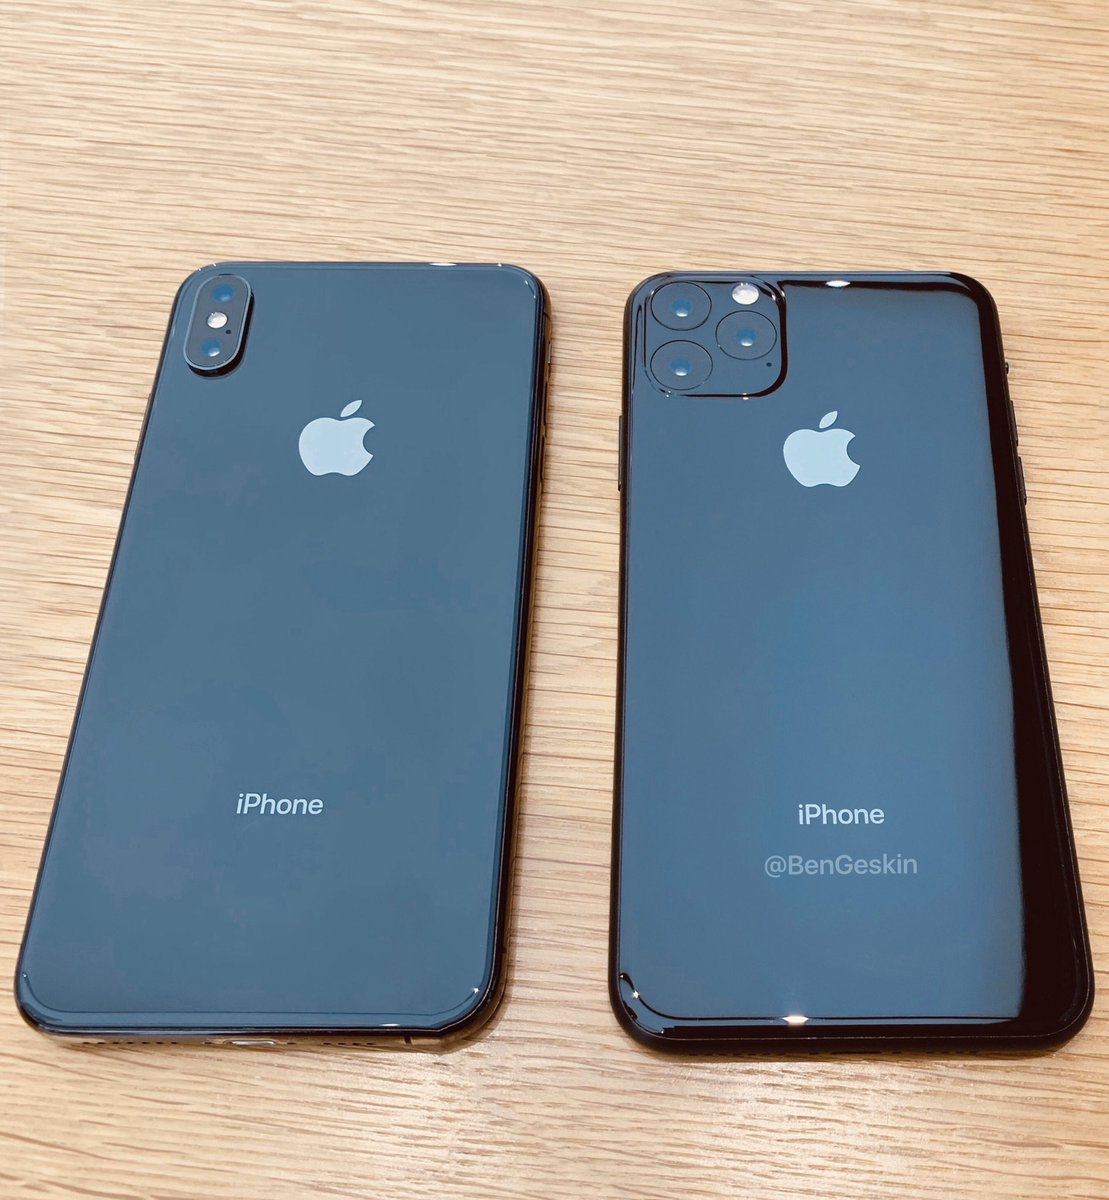 Sforum - The latest technology news page he-iPhone-XI-1 iPhone XI comes with super nice design next to iPhone XS